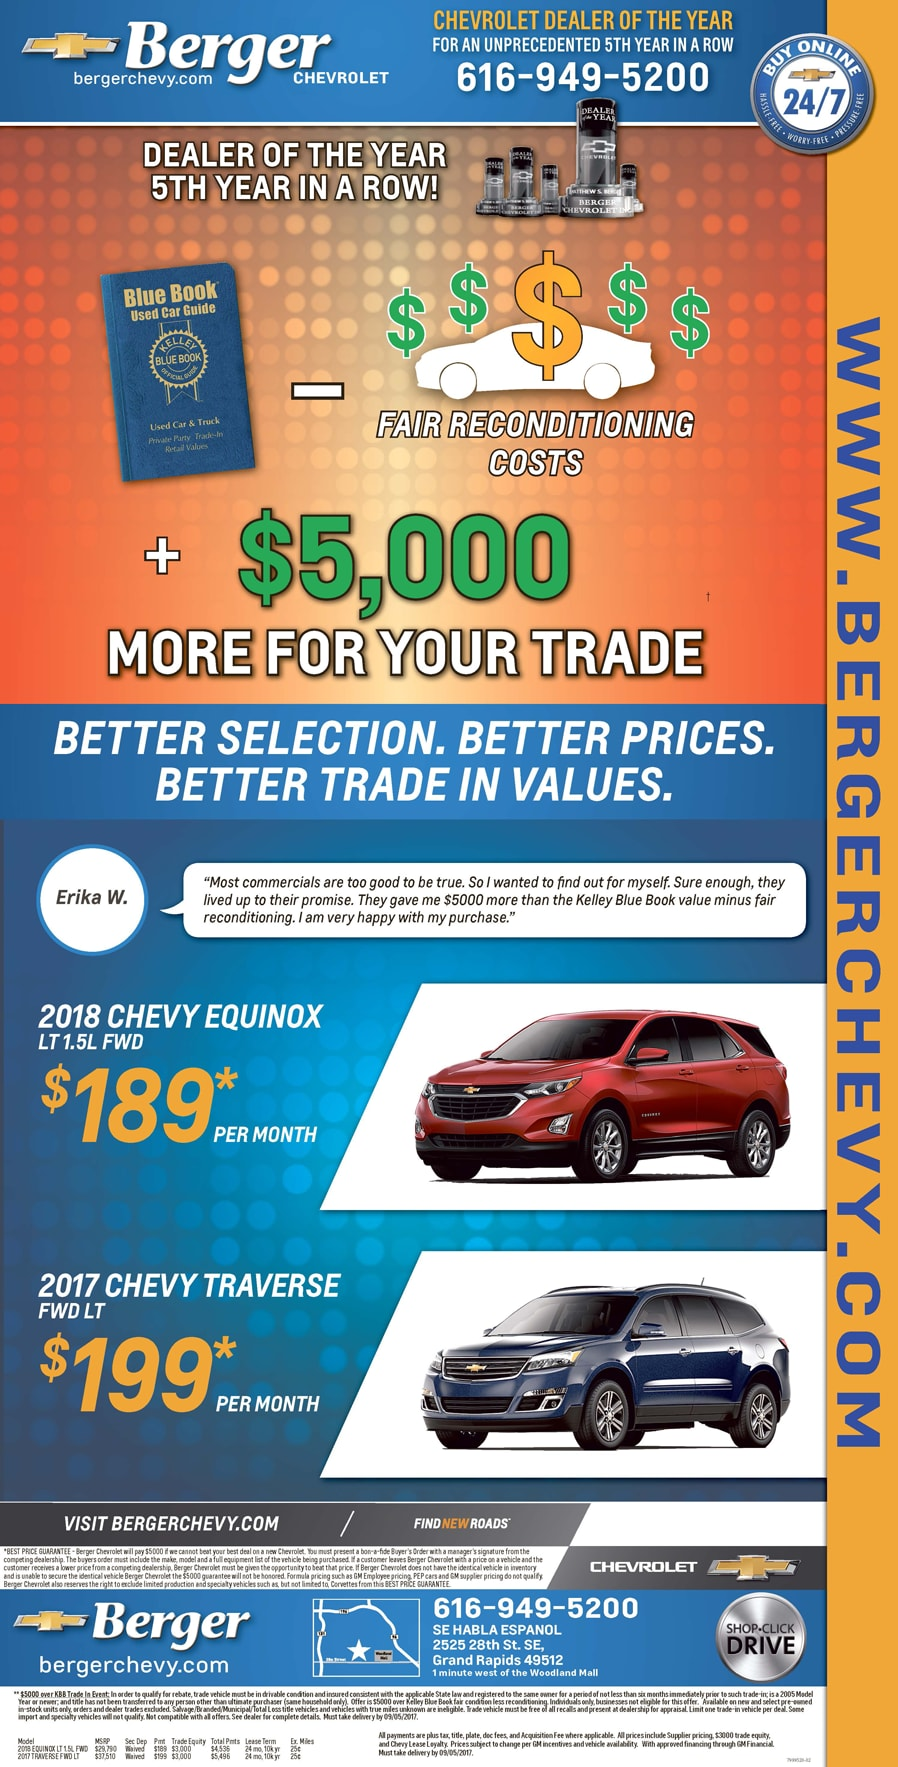 Get The Most For Your Trade At Berger Berger Chevrolet Is